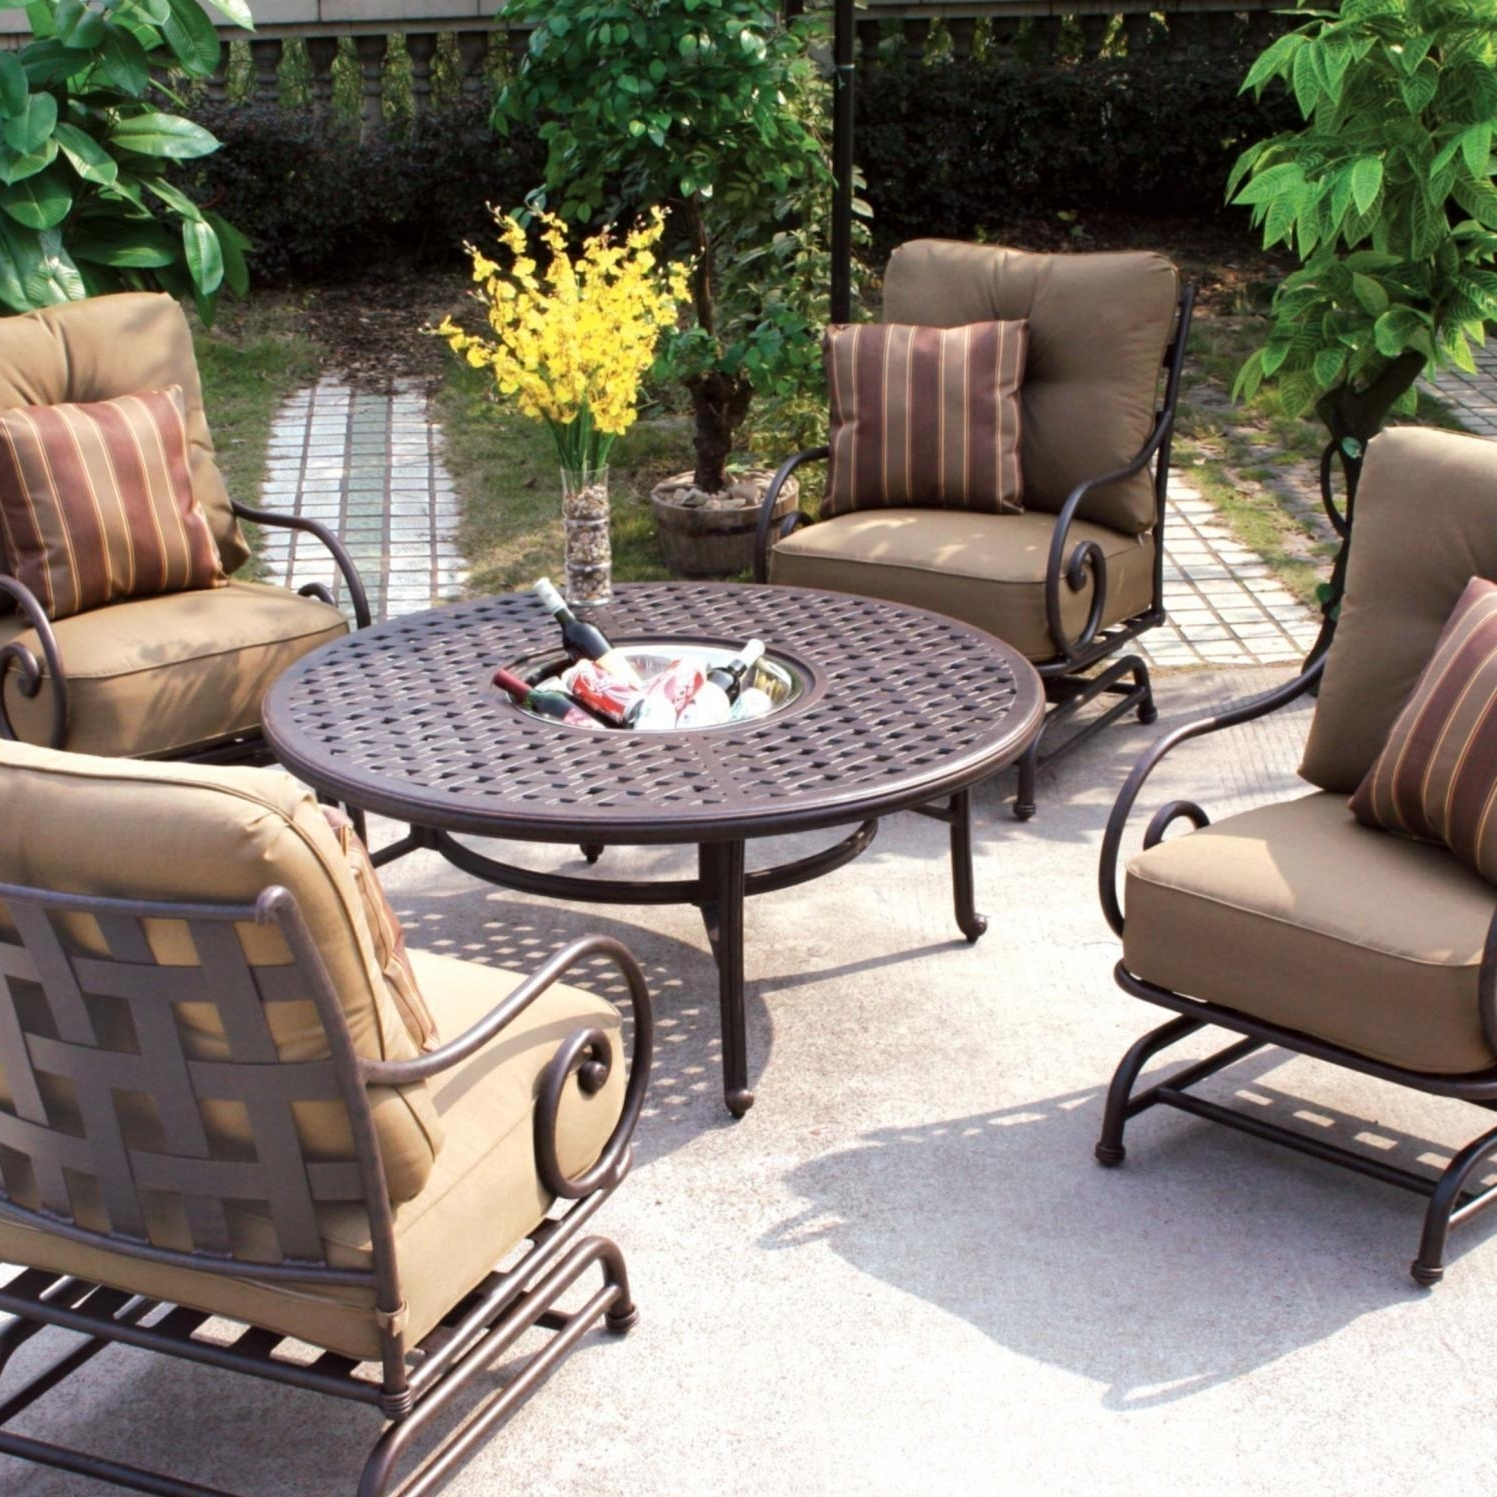 Patio Furniture Conversation Sets At Home Depot Within Most Recently Released Darlee Malibu 5 Piece Cast Aluminum Patio Conversation Seating Set (View 11 of 15)